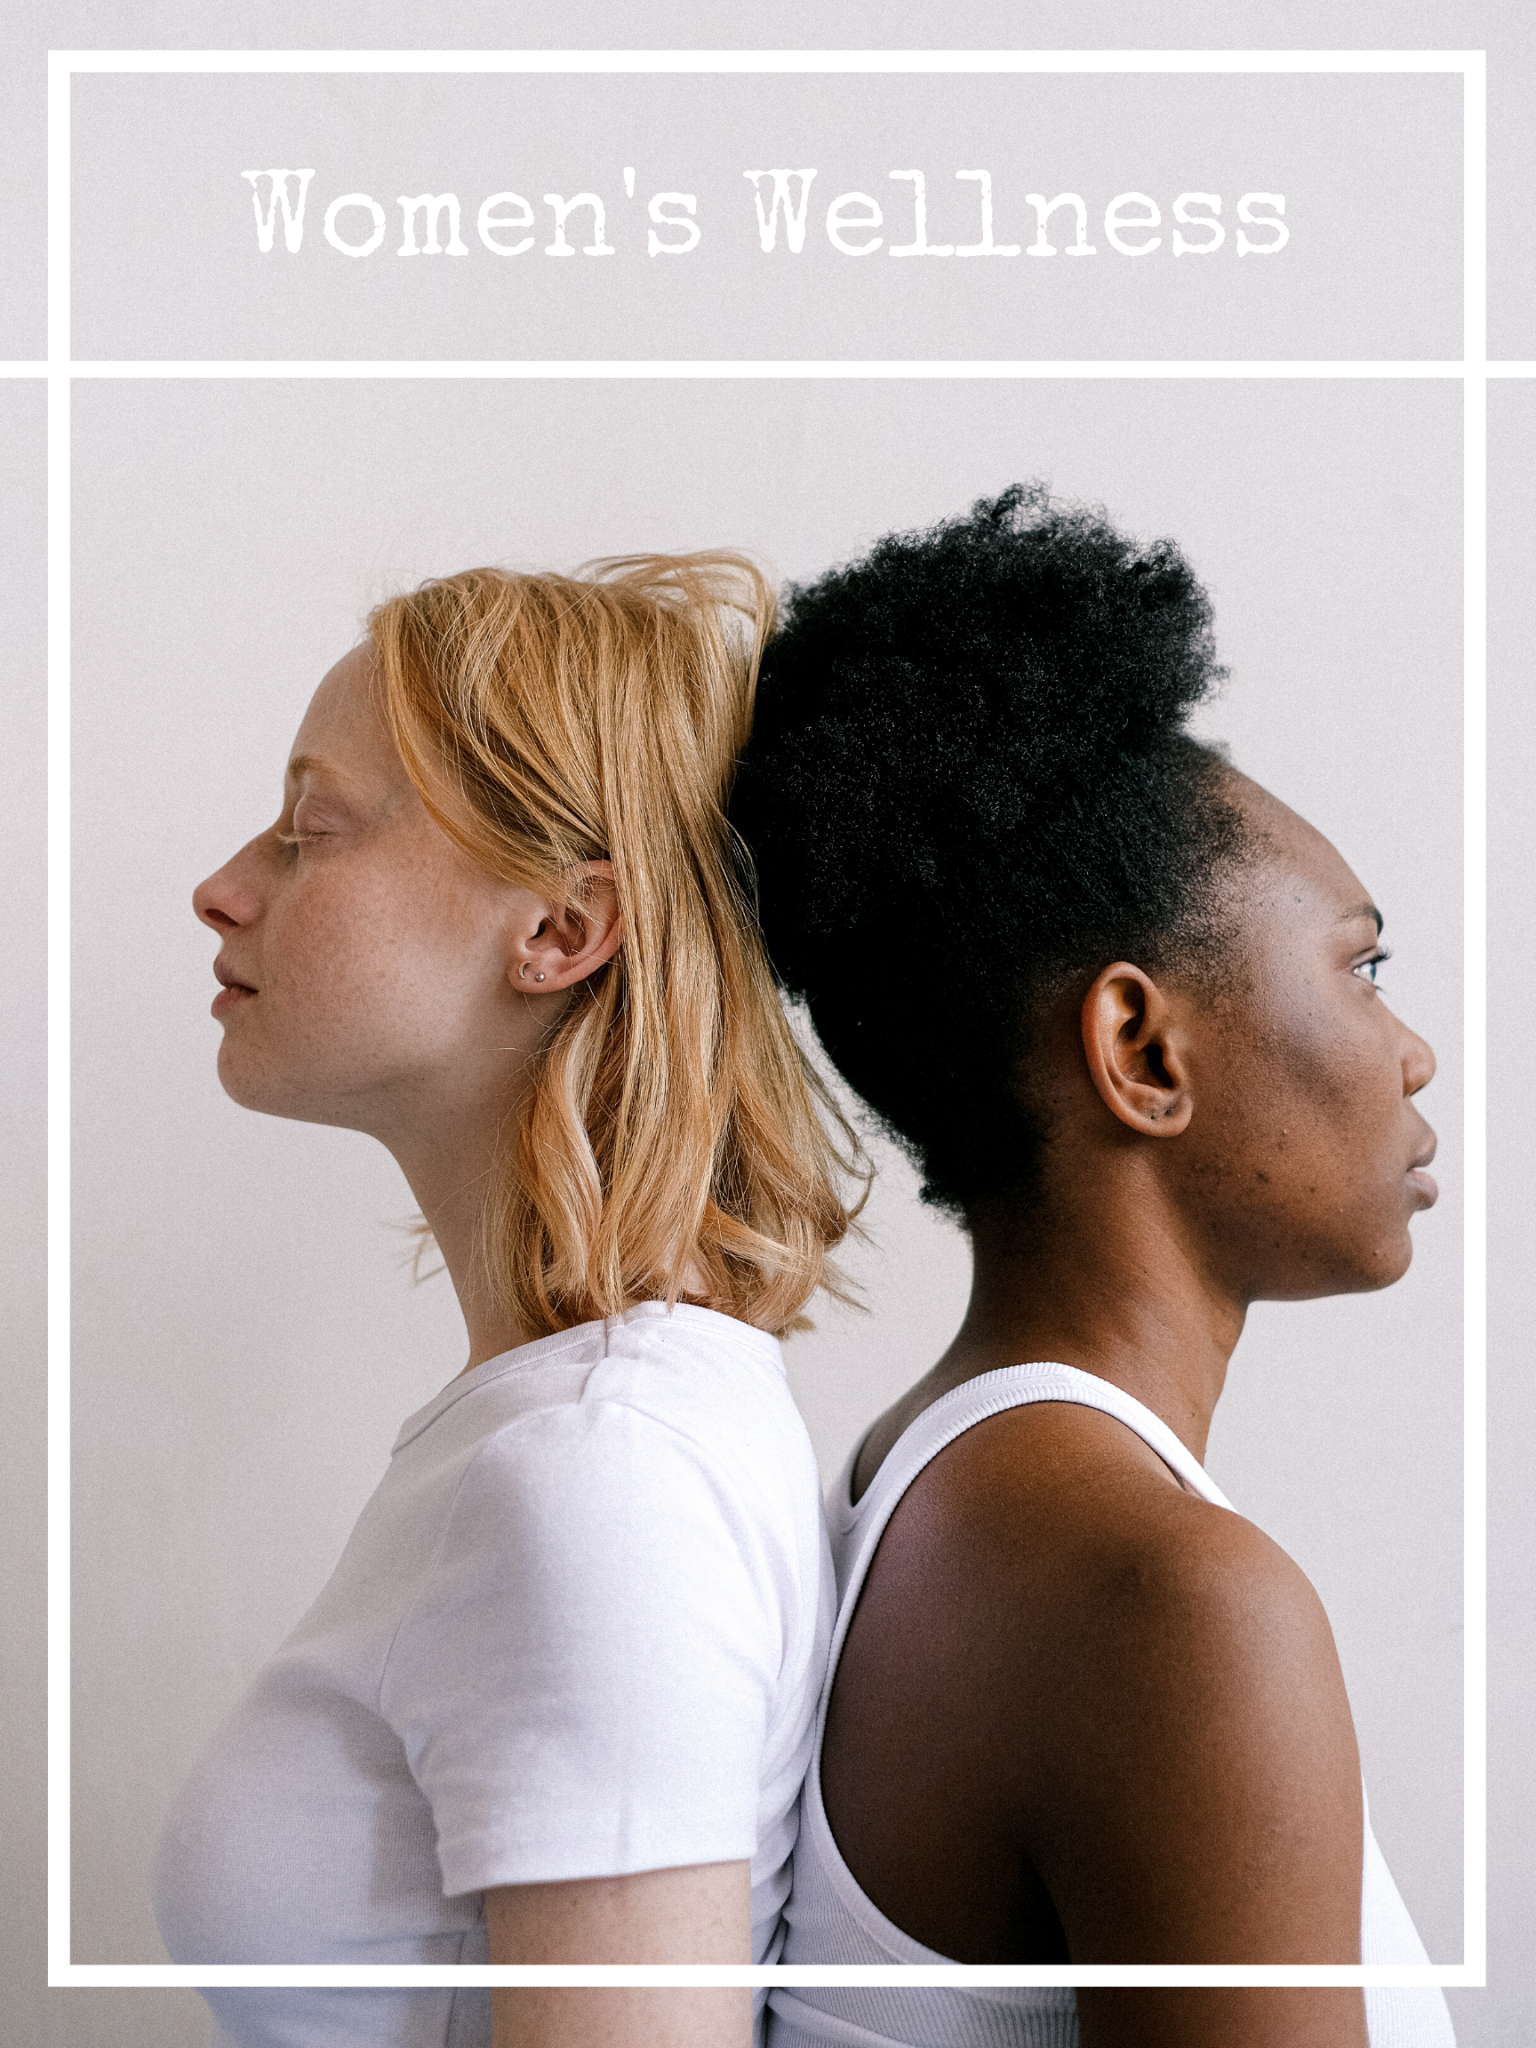 Women's Wellness Blog with a white woman and a black woman back to back leaning on each other